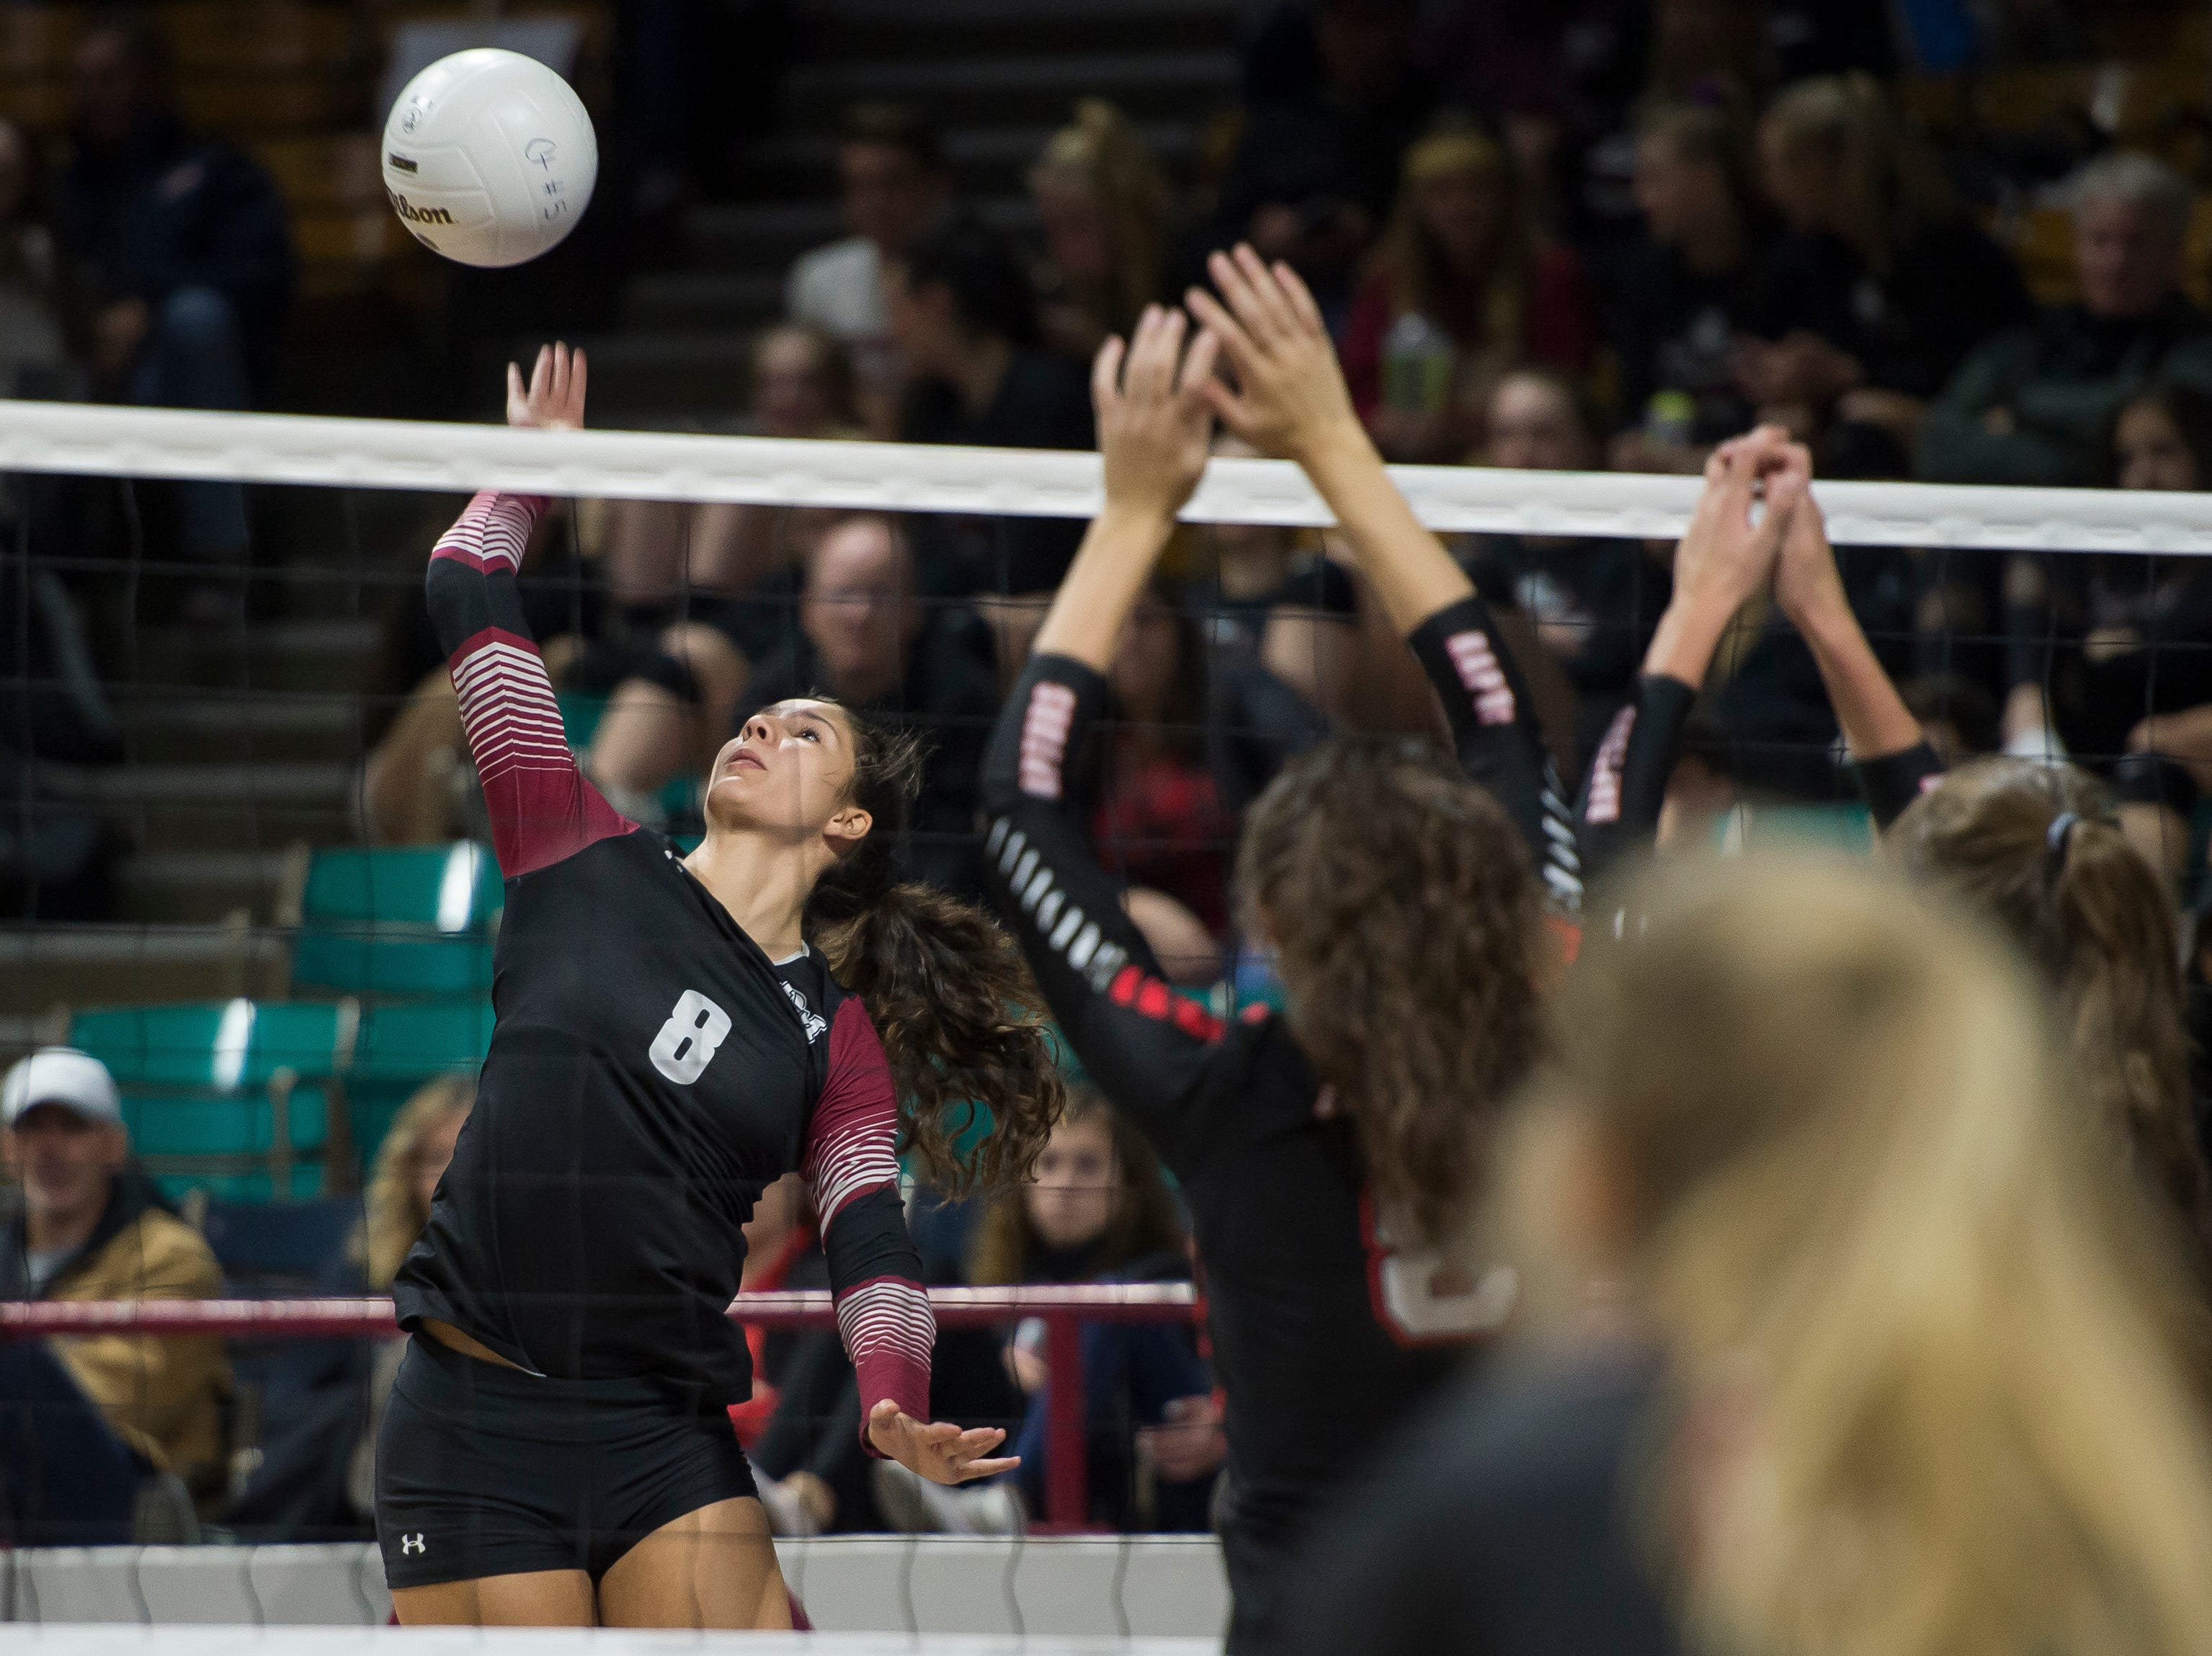 Rocky Mountain High School senior Myles Hilbert (8) looks to spike during a first round state game against Eaglecrest on Thursday, Nov. 8, 2018, at the Denver Coliseum in Denver, Colo.